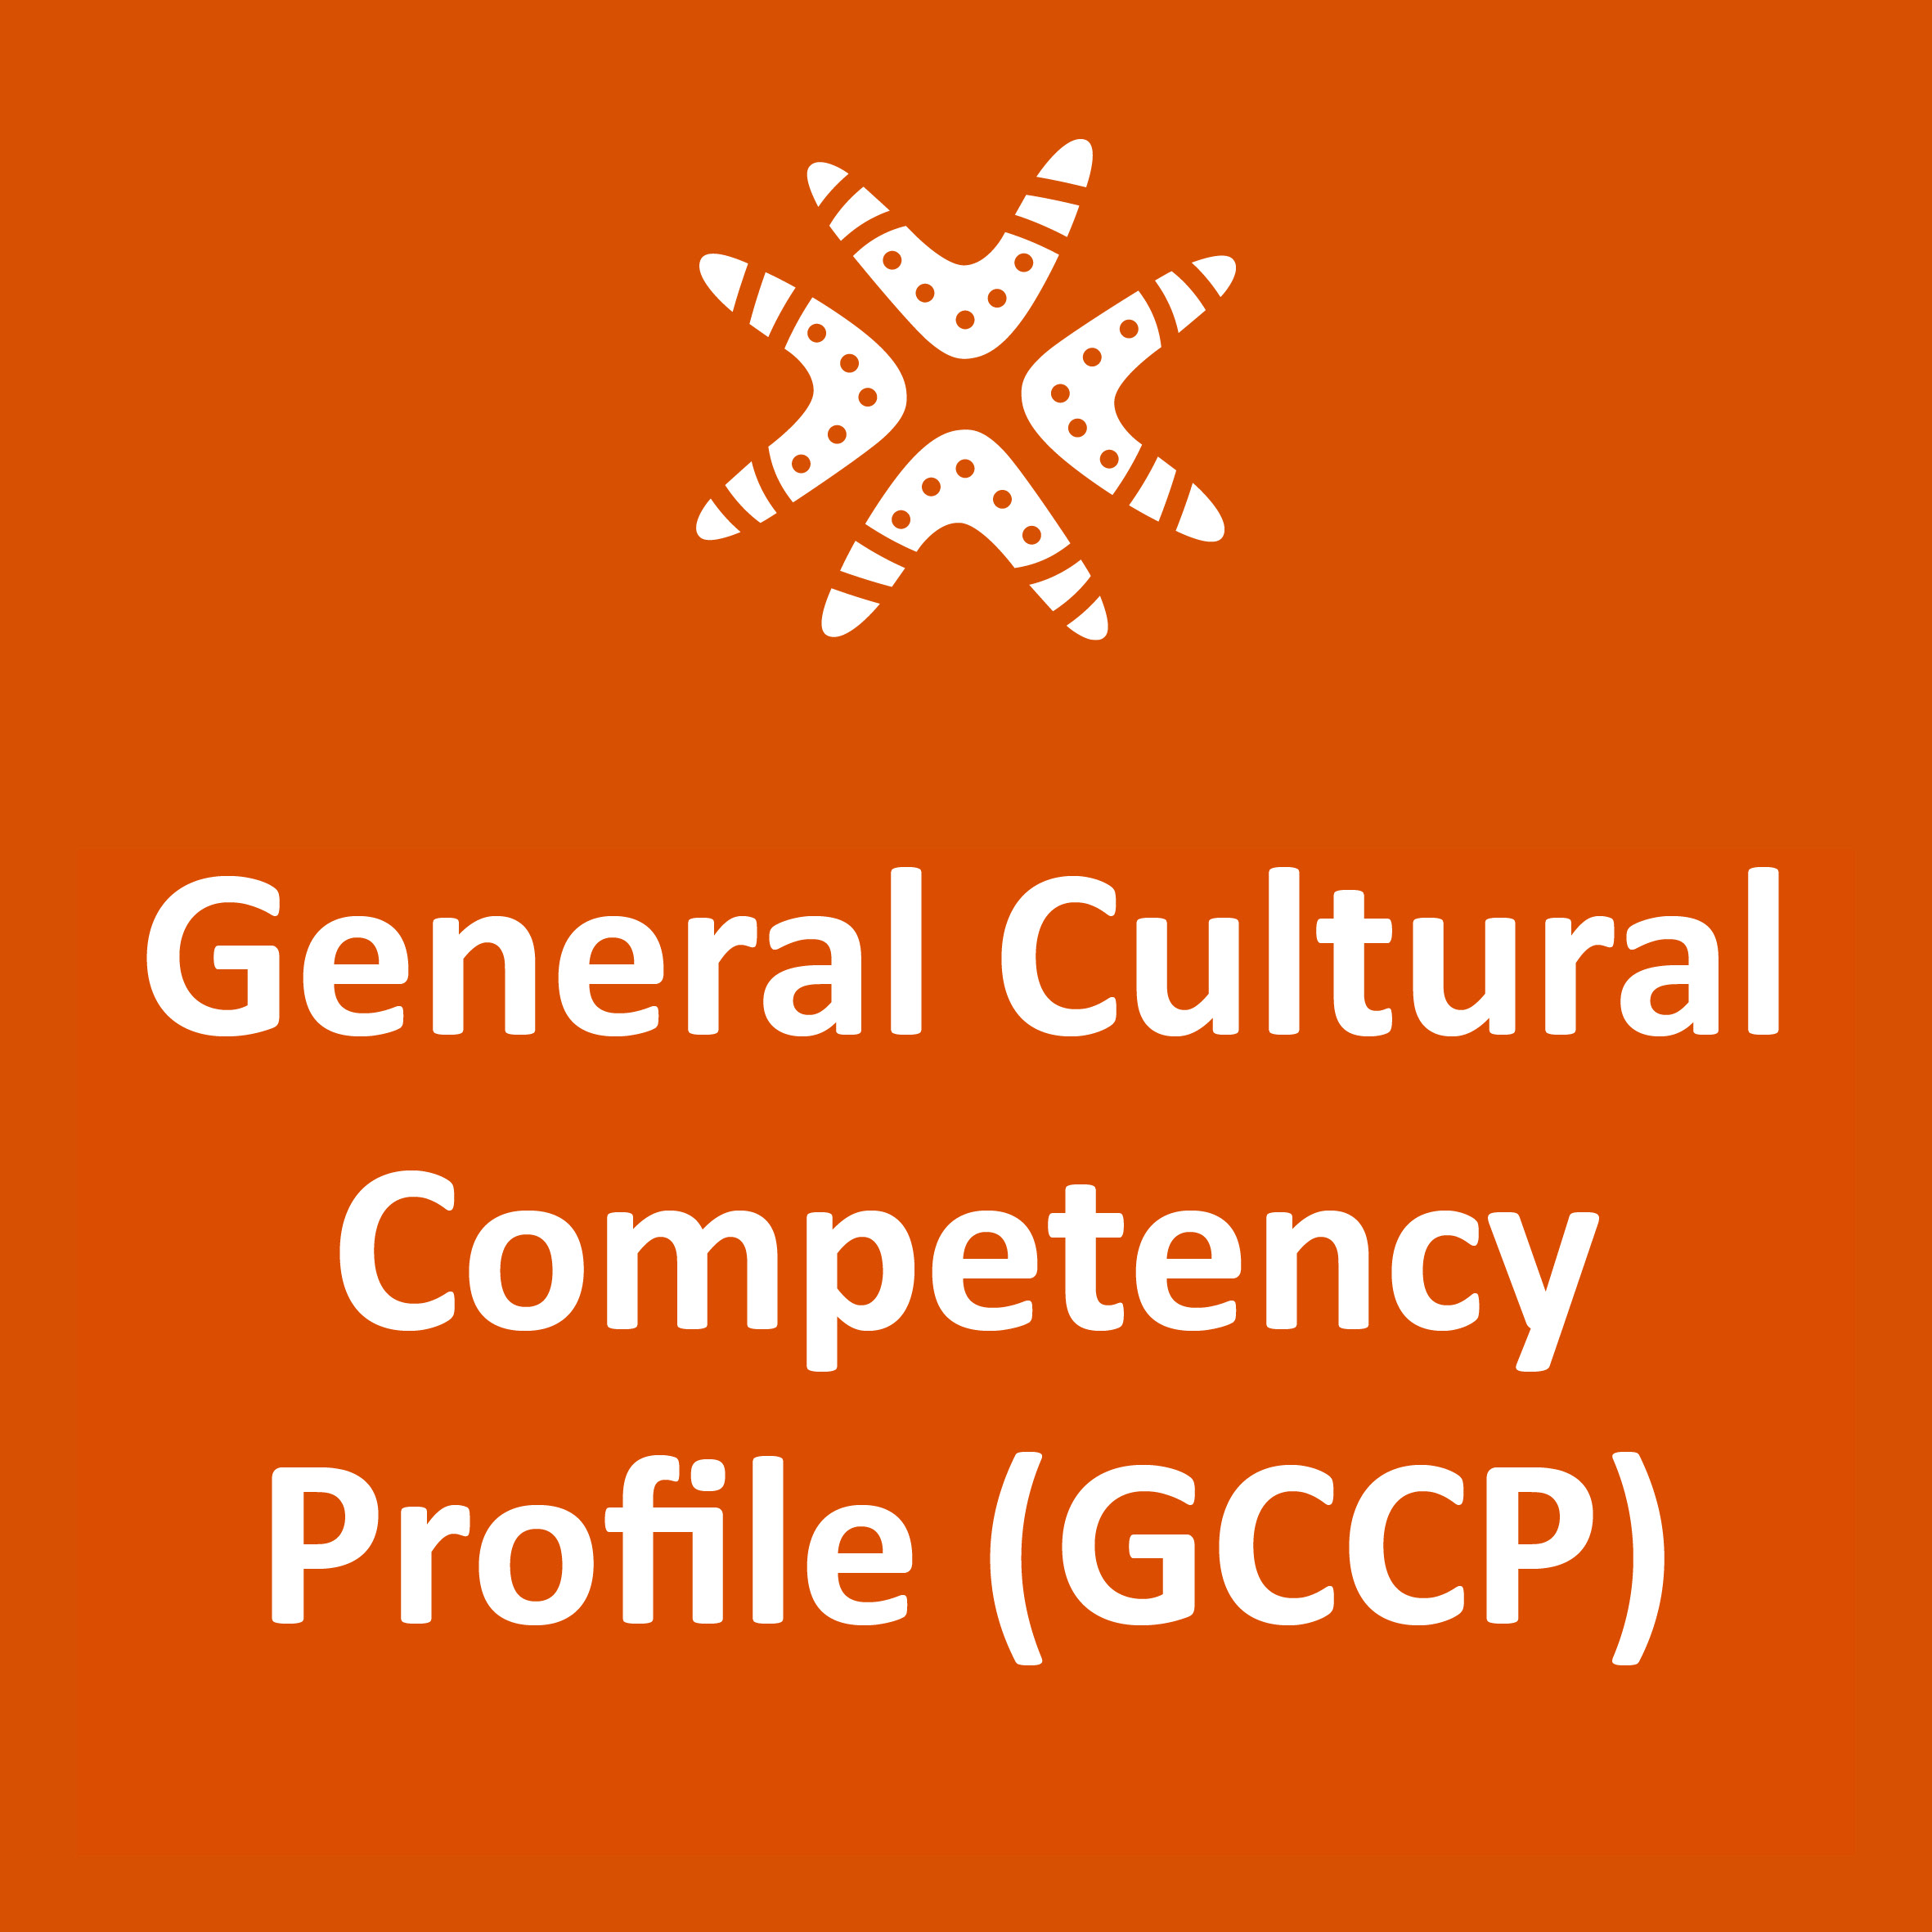 The General Cultural Competency Profile (GCCP)